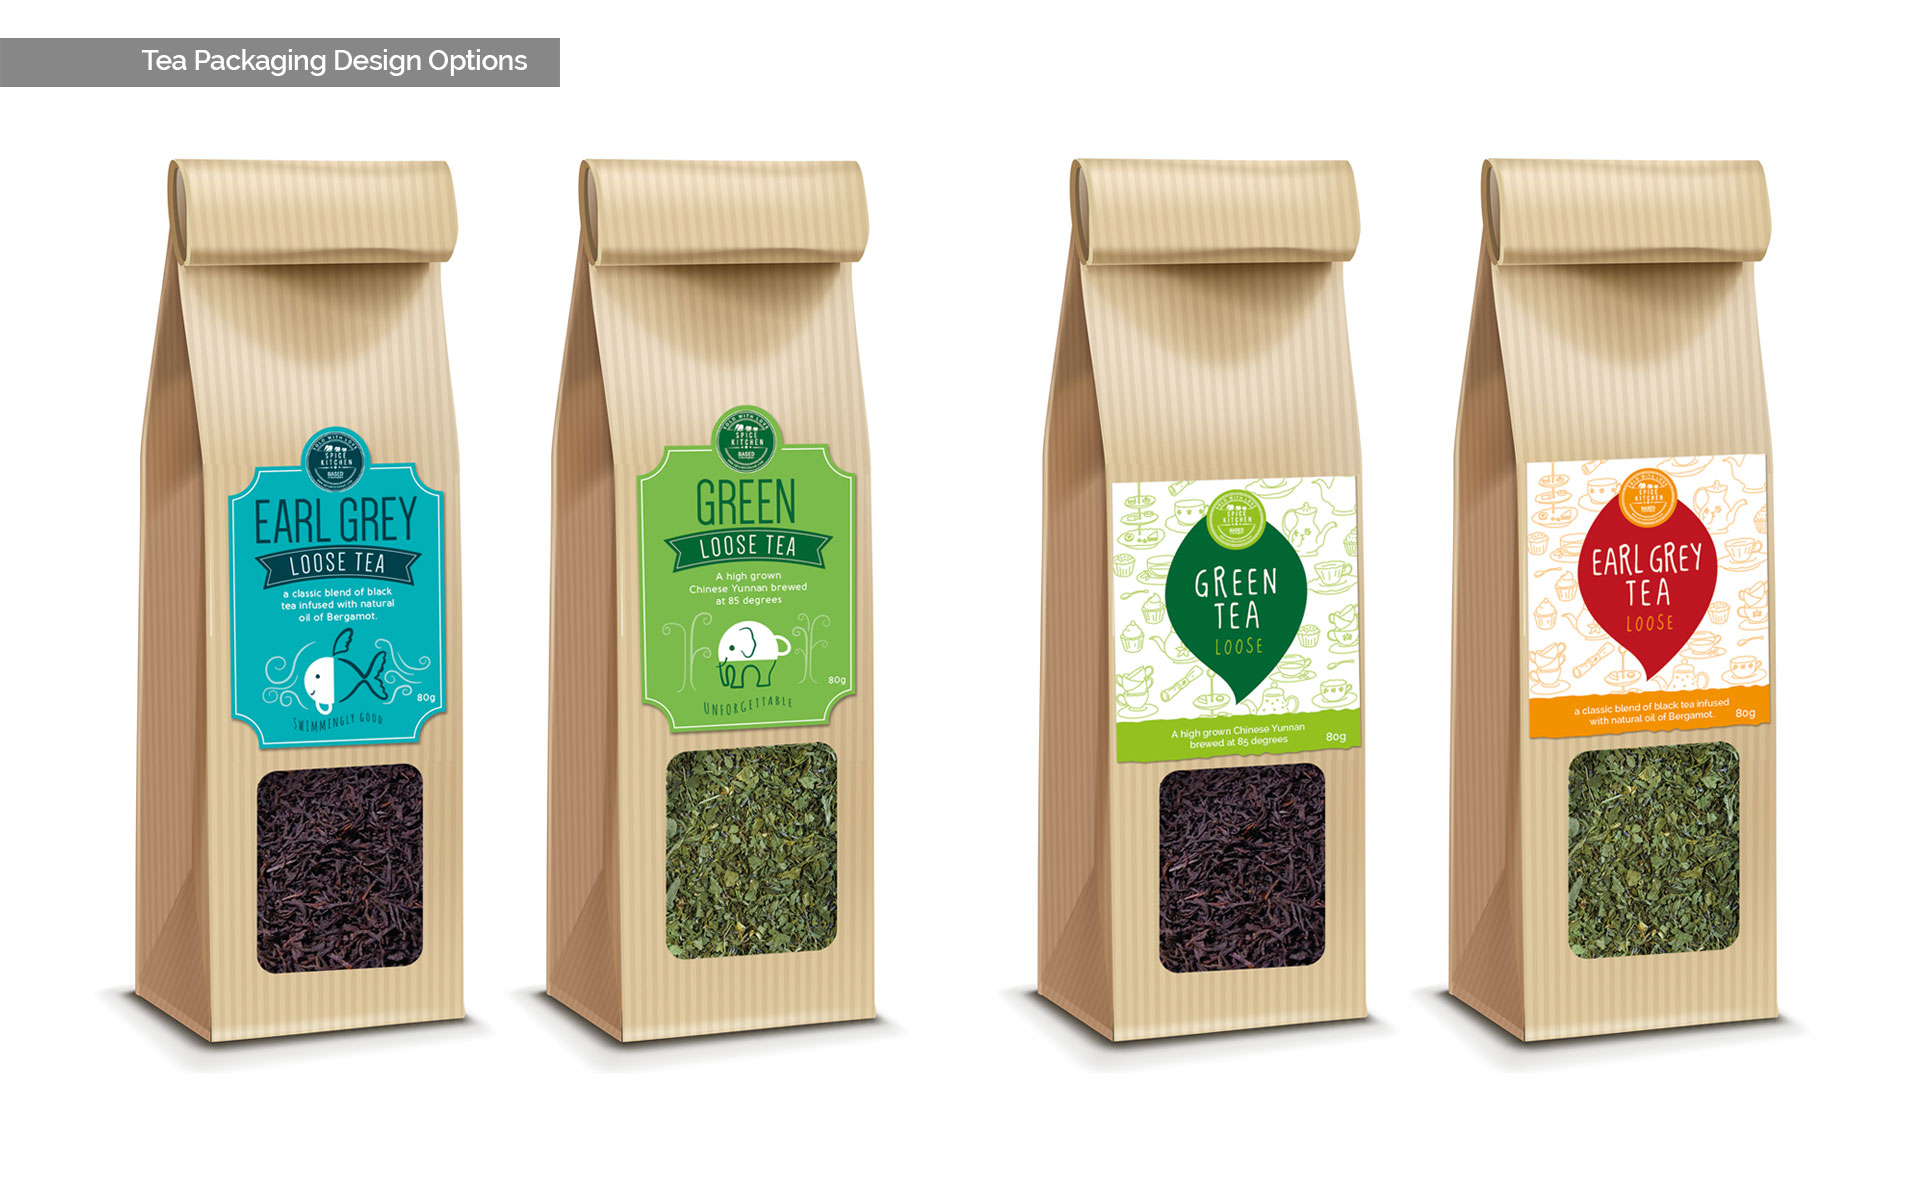 Tea packaging design options